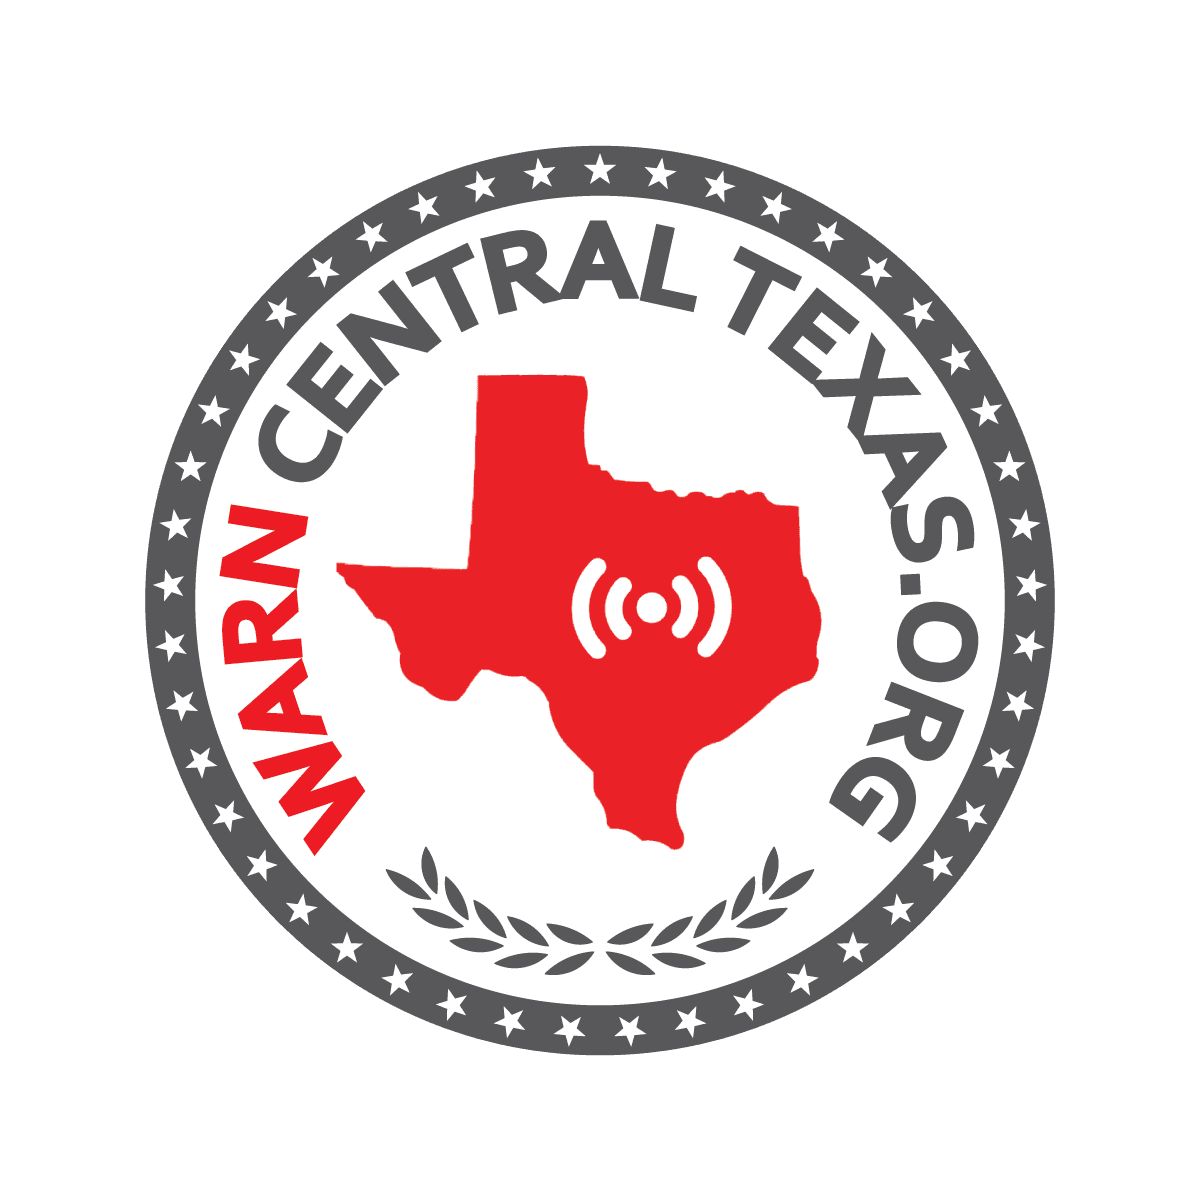 WarnCentralTexas circle